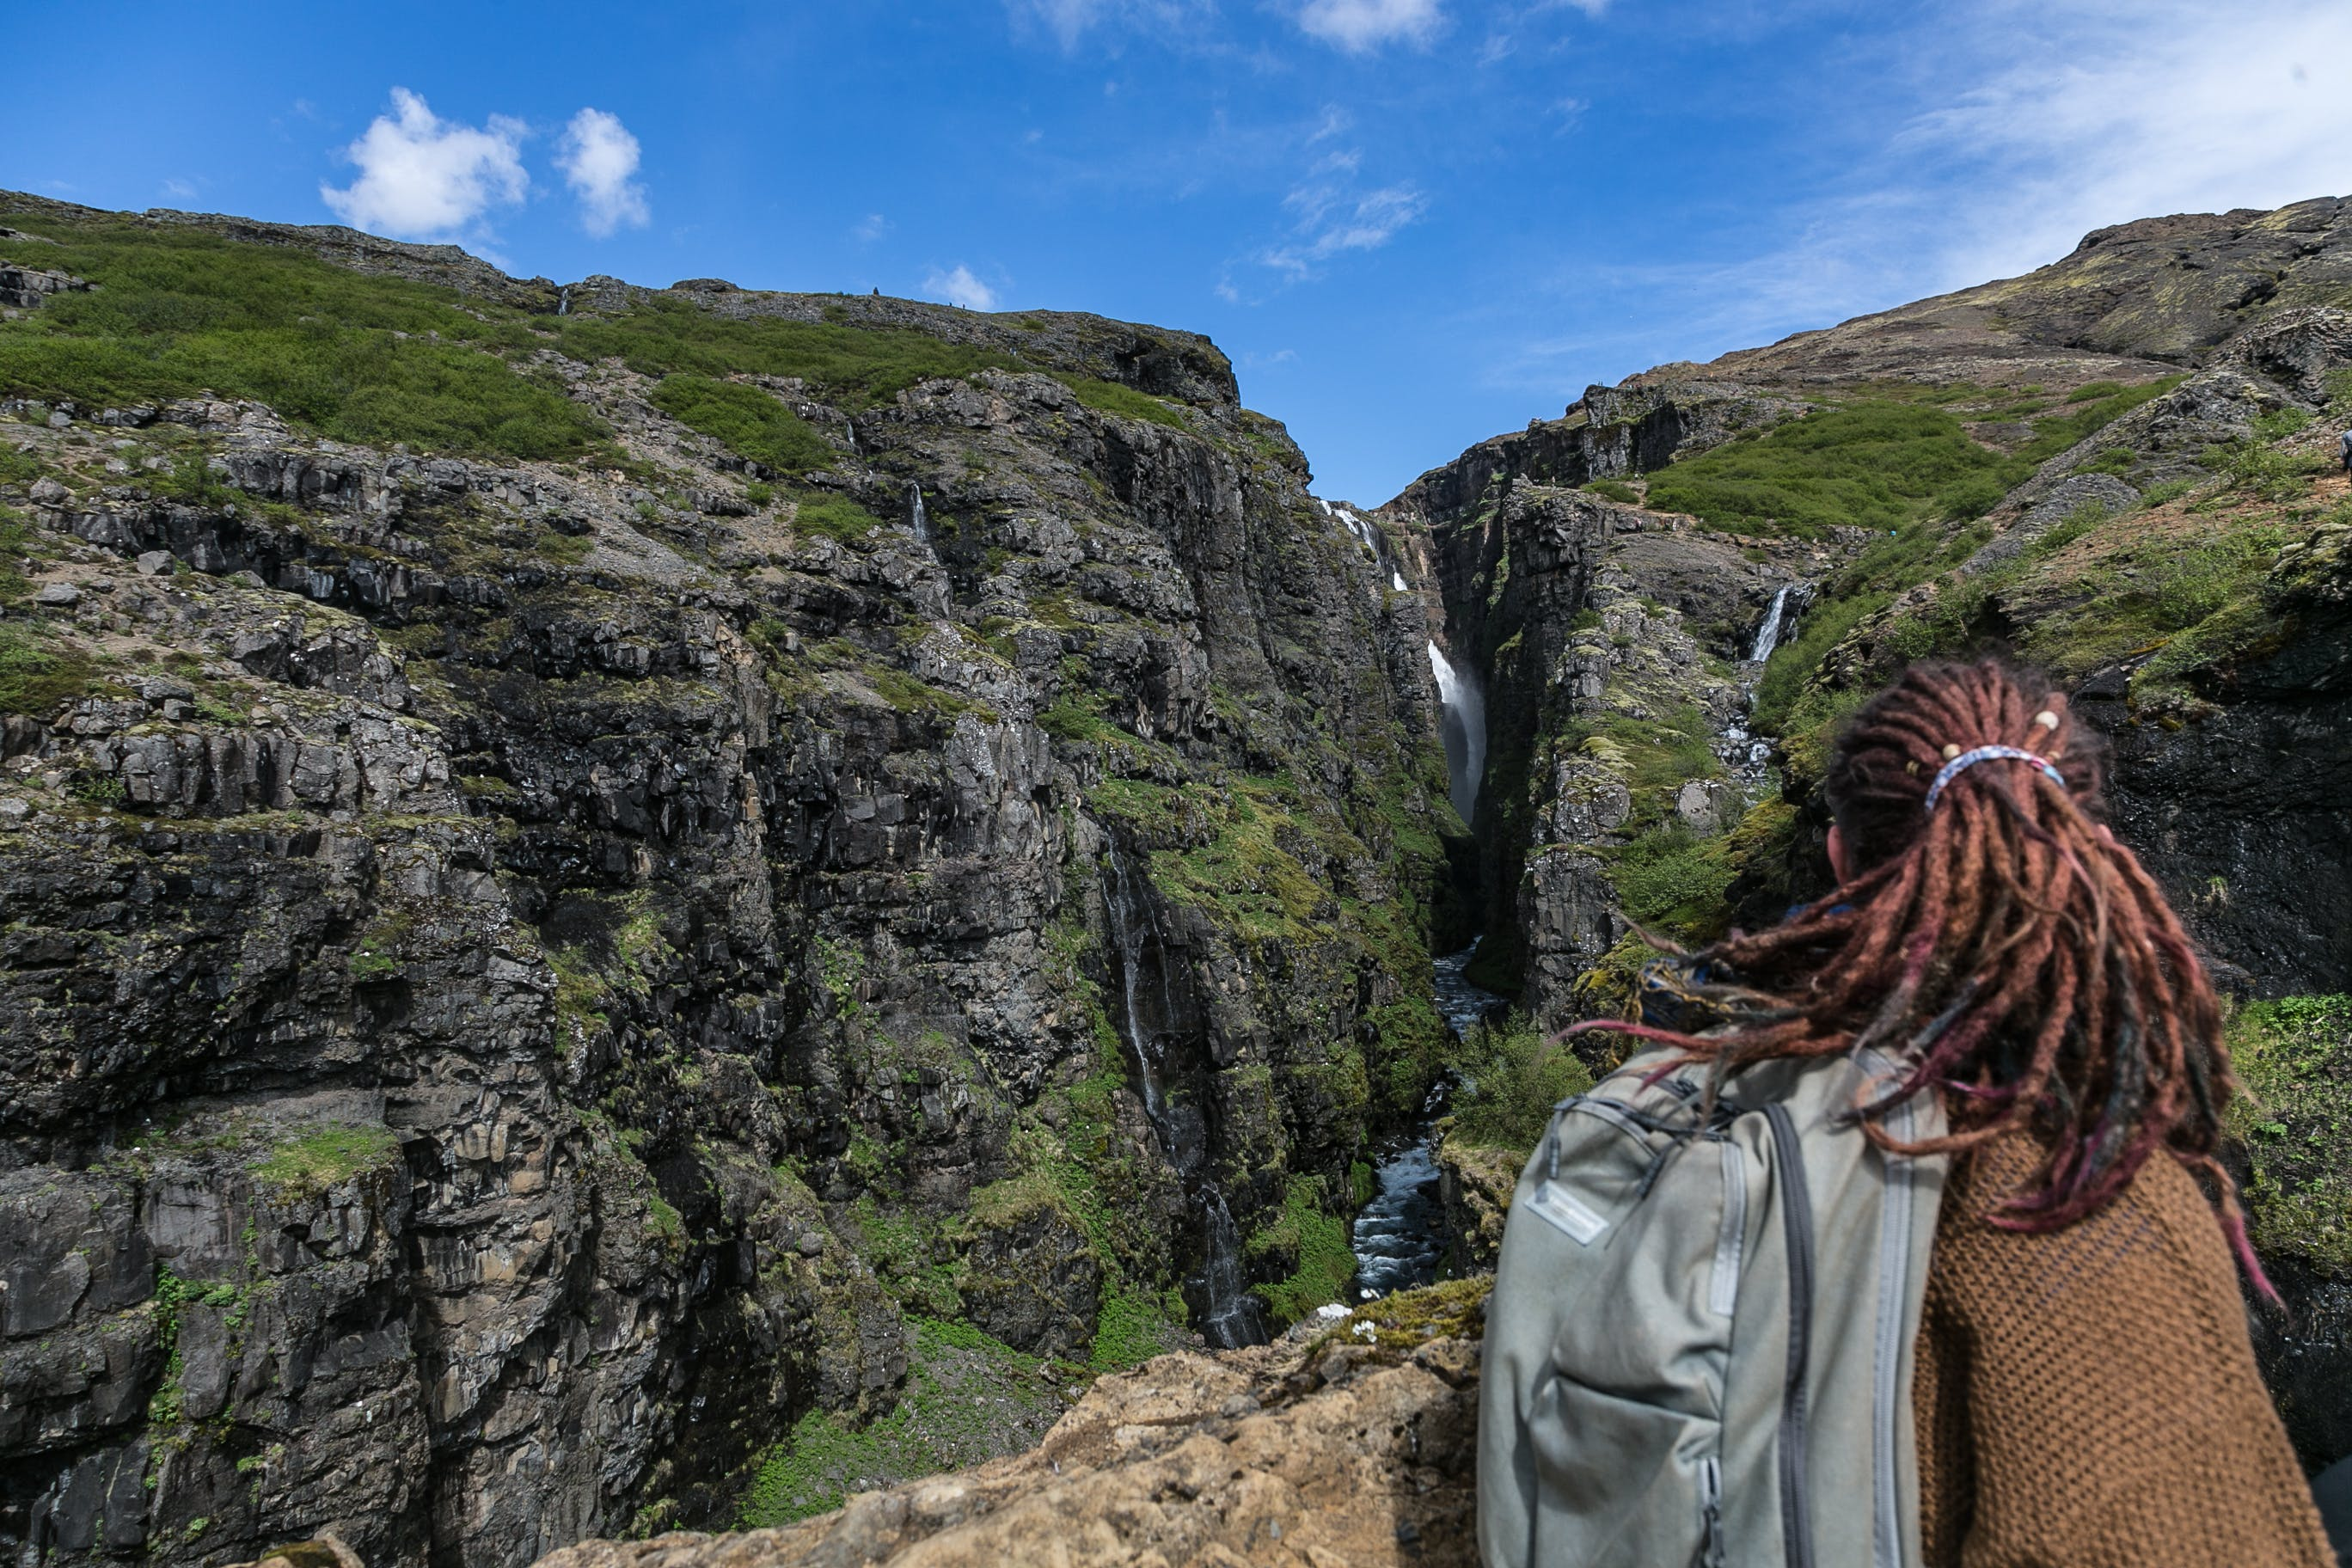 Person Wearing Brown Sweater and Grey Backpack With Brown Hair Dreadlocks on Top of Mountain Overlooking Waterfalls